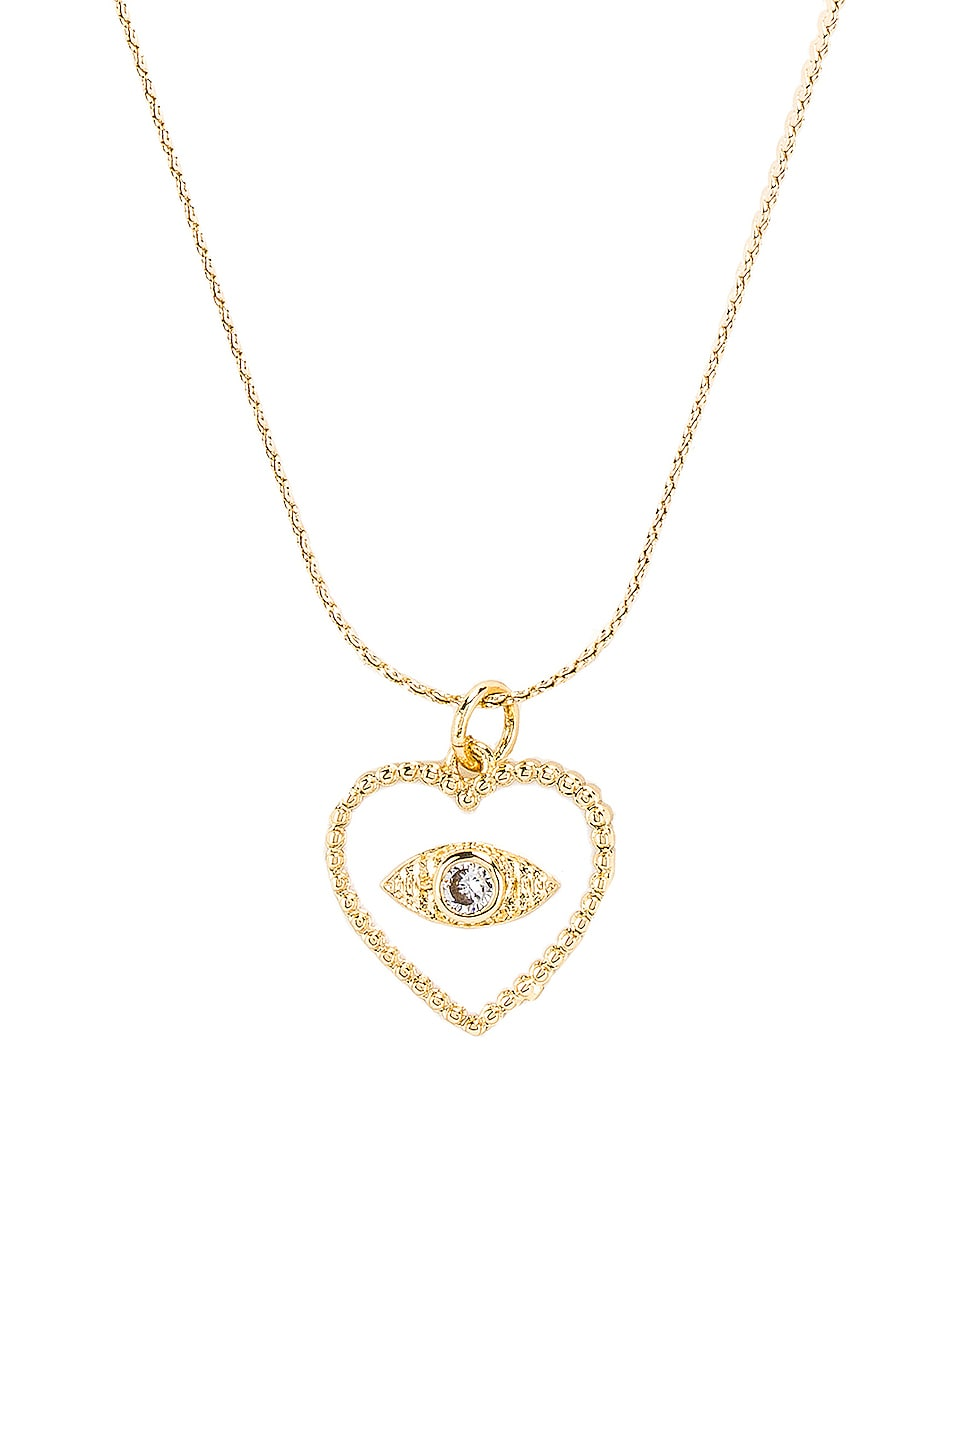 Vanessa Mooney The Wandering Eye Necklace in Gold & White